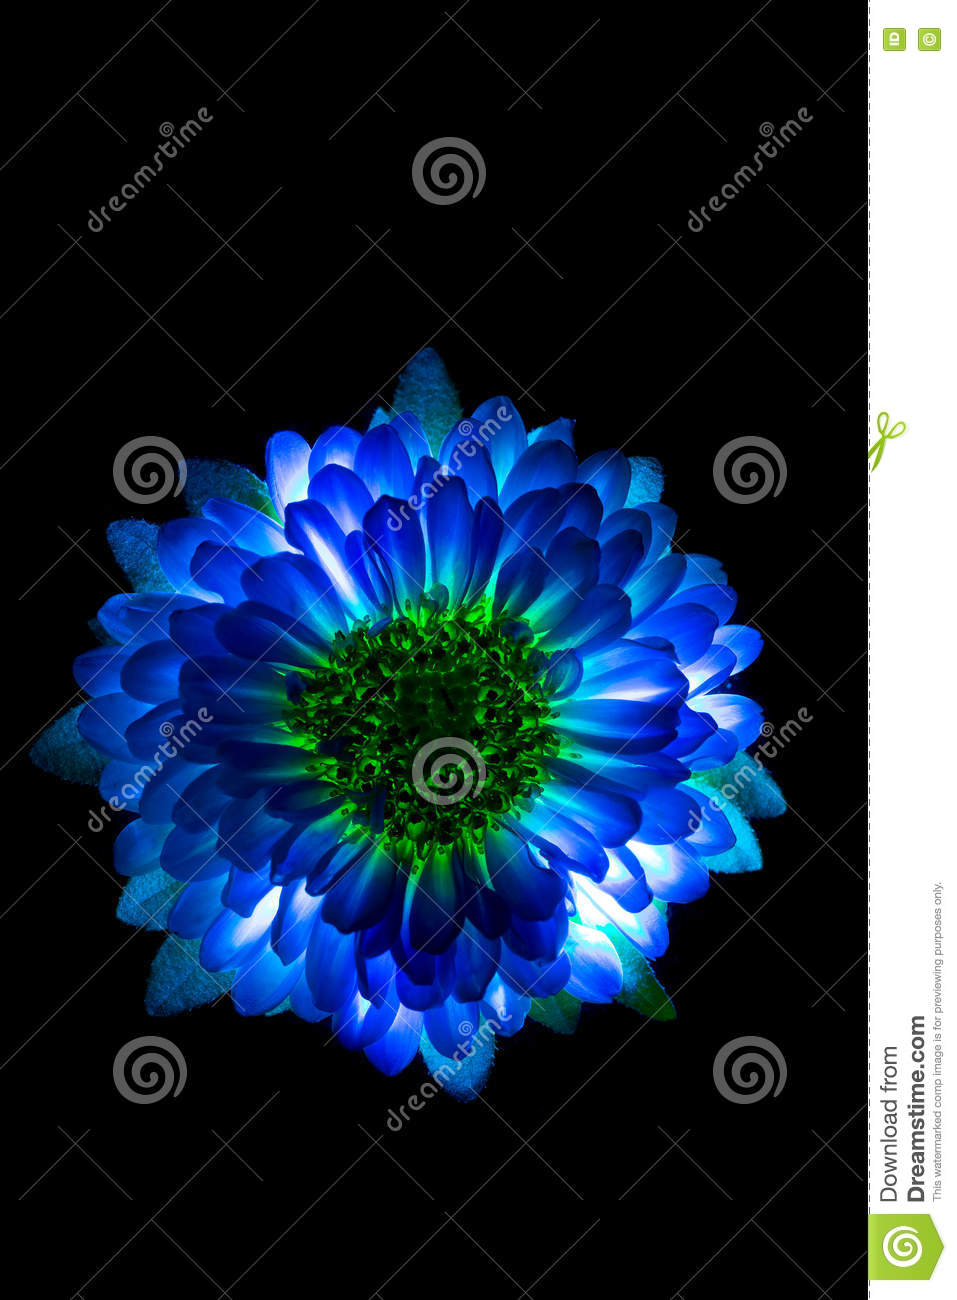 Blue Flower Black Background Wallpaper Hd Wallpaper